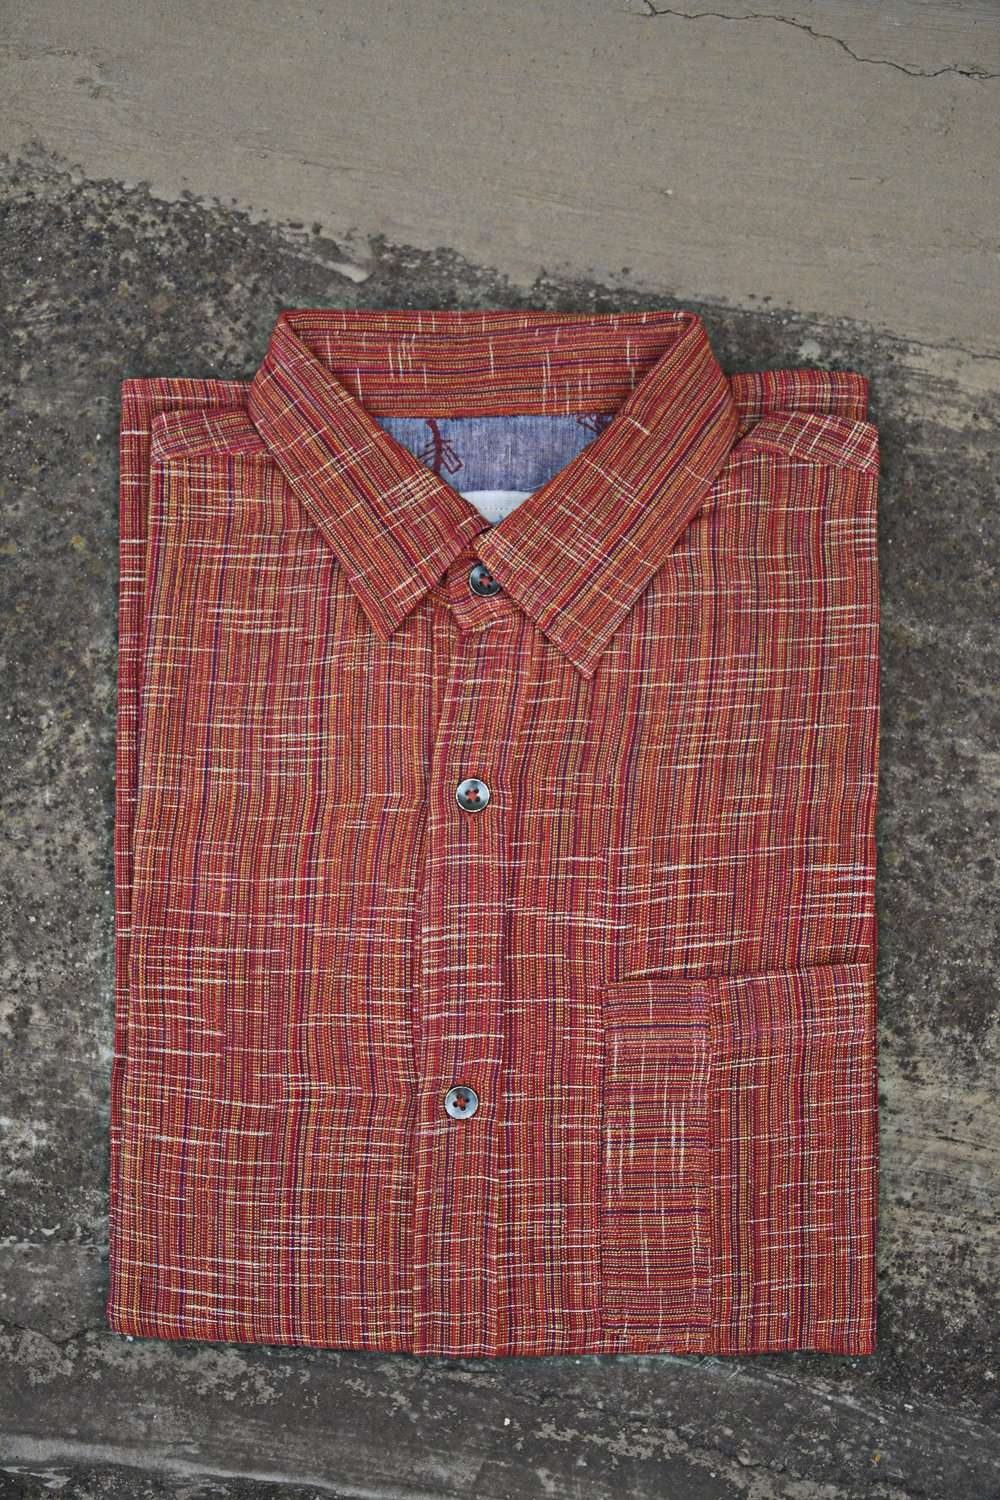 Rust Colour Full Sleeves Shirt for Men. - metaphorracha